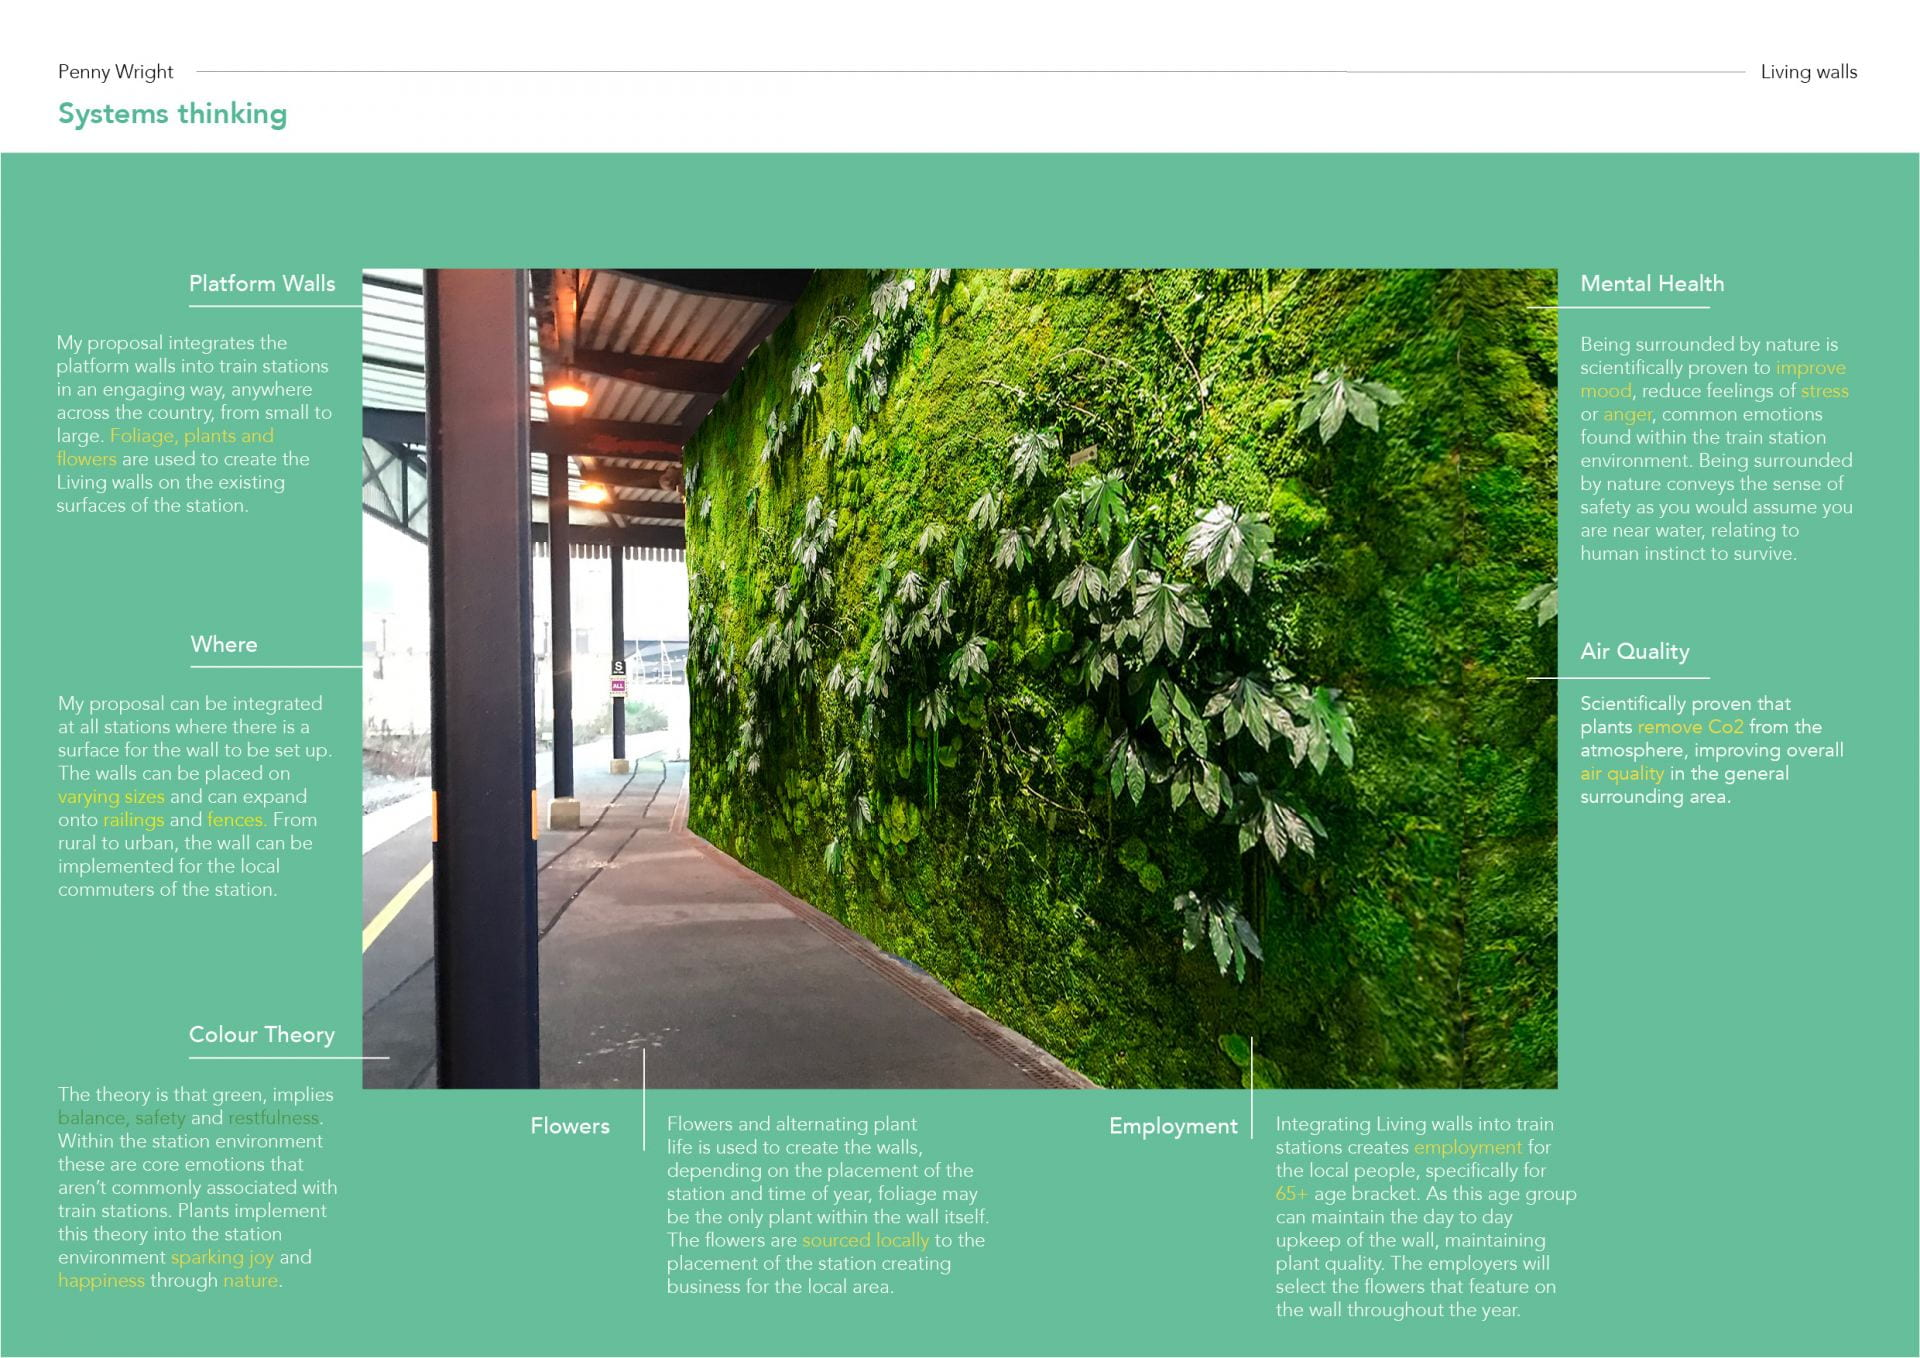 Presentation slide with an image of a train platform with greenery on a wall and information about the living walls project.